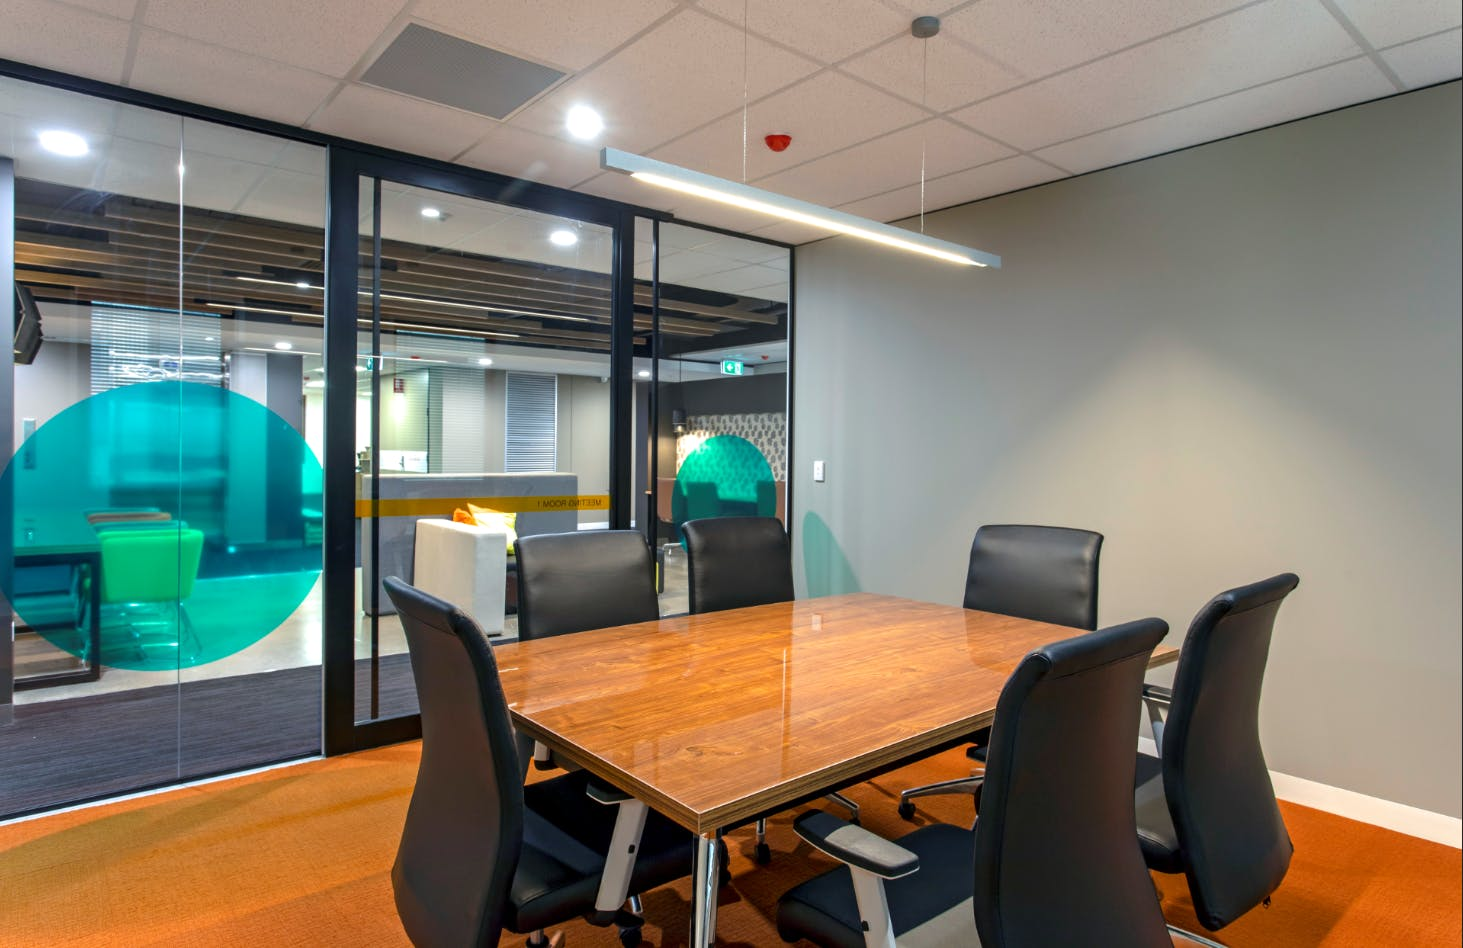 Suite 9, serviced office at Spot Co-Working, image 3